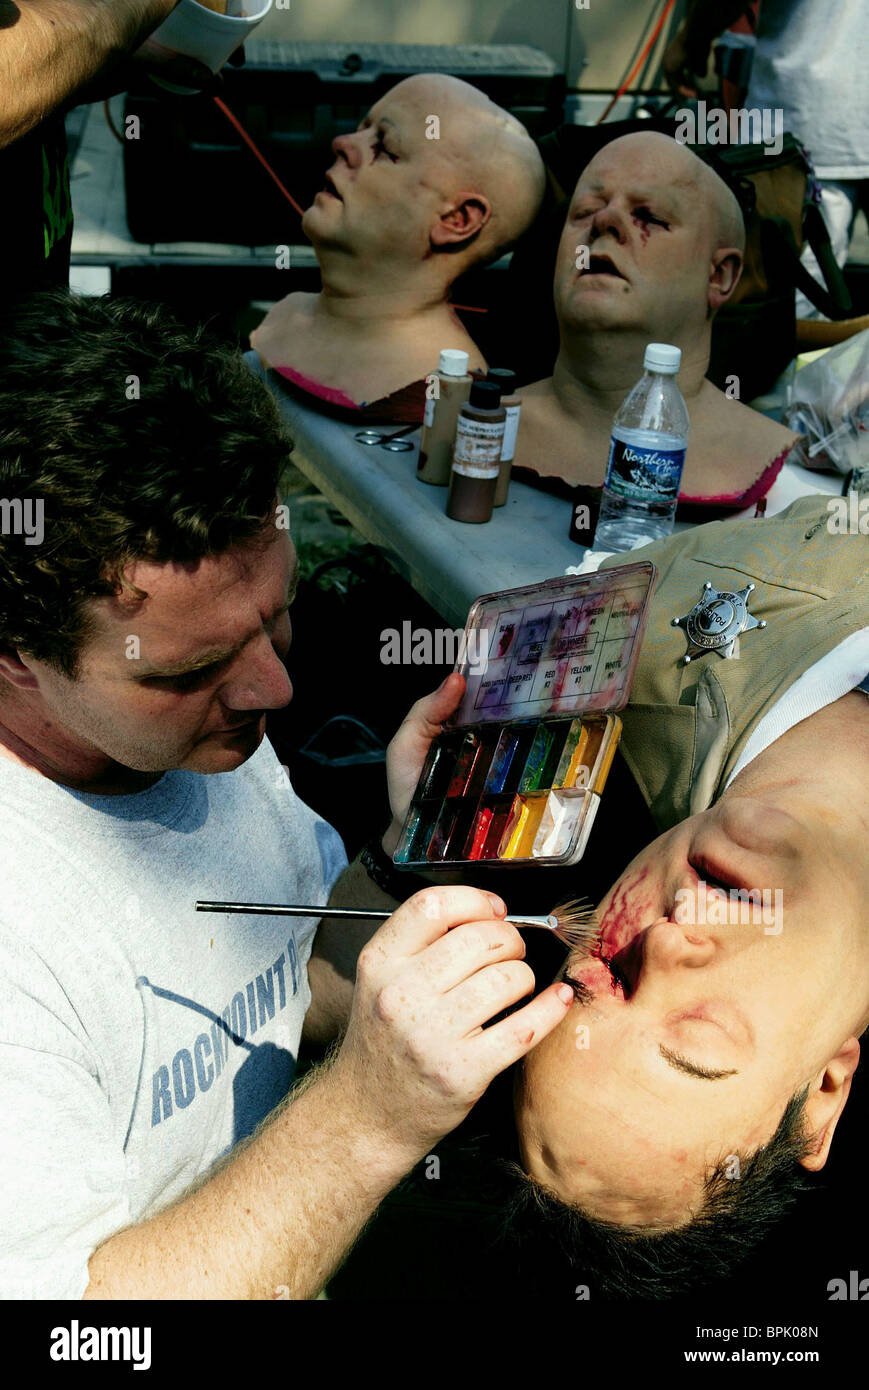 SPECIAL EFFECTS MAKEUP DEPT. WRONG TURN (2003) - Stock Image